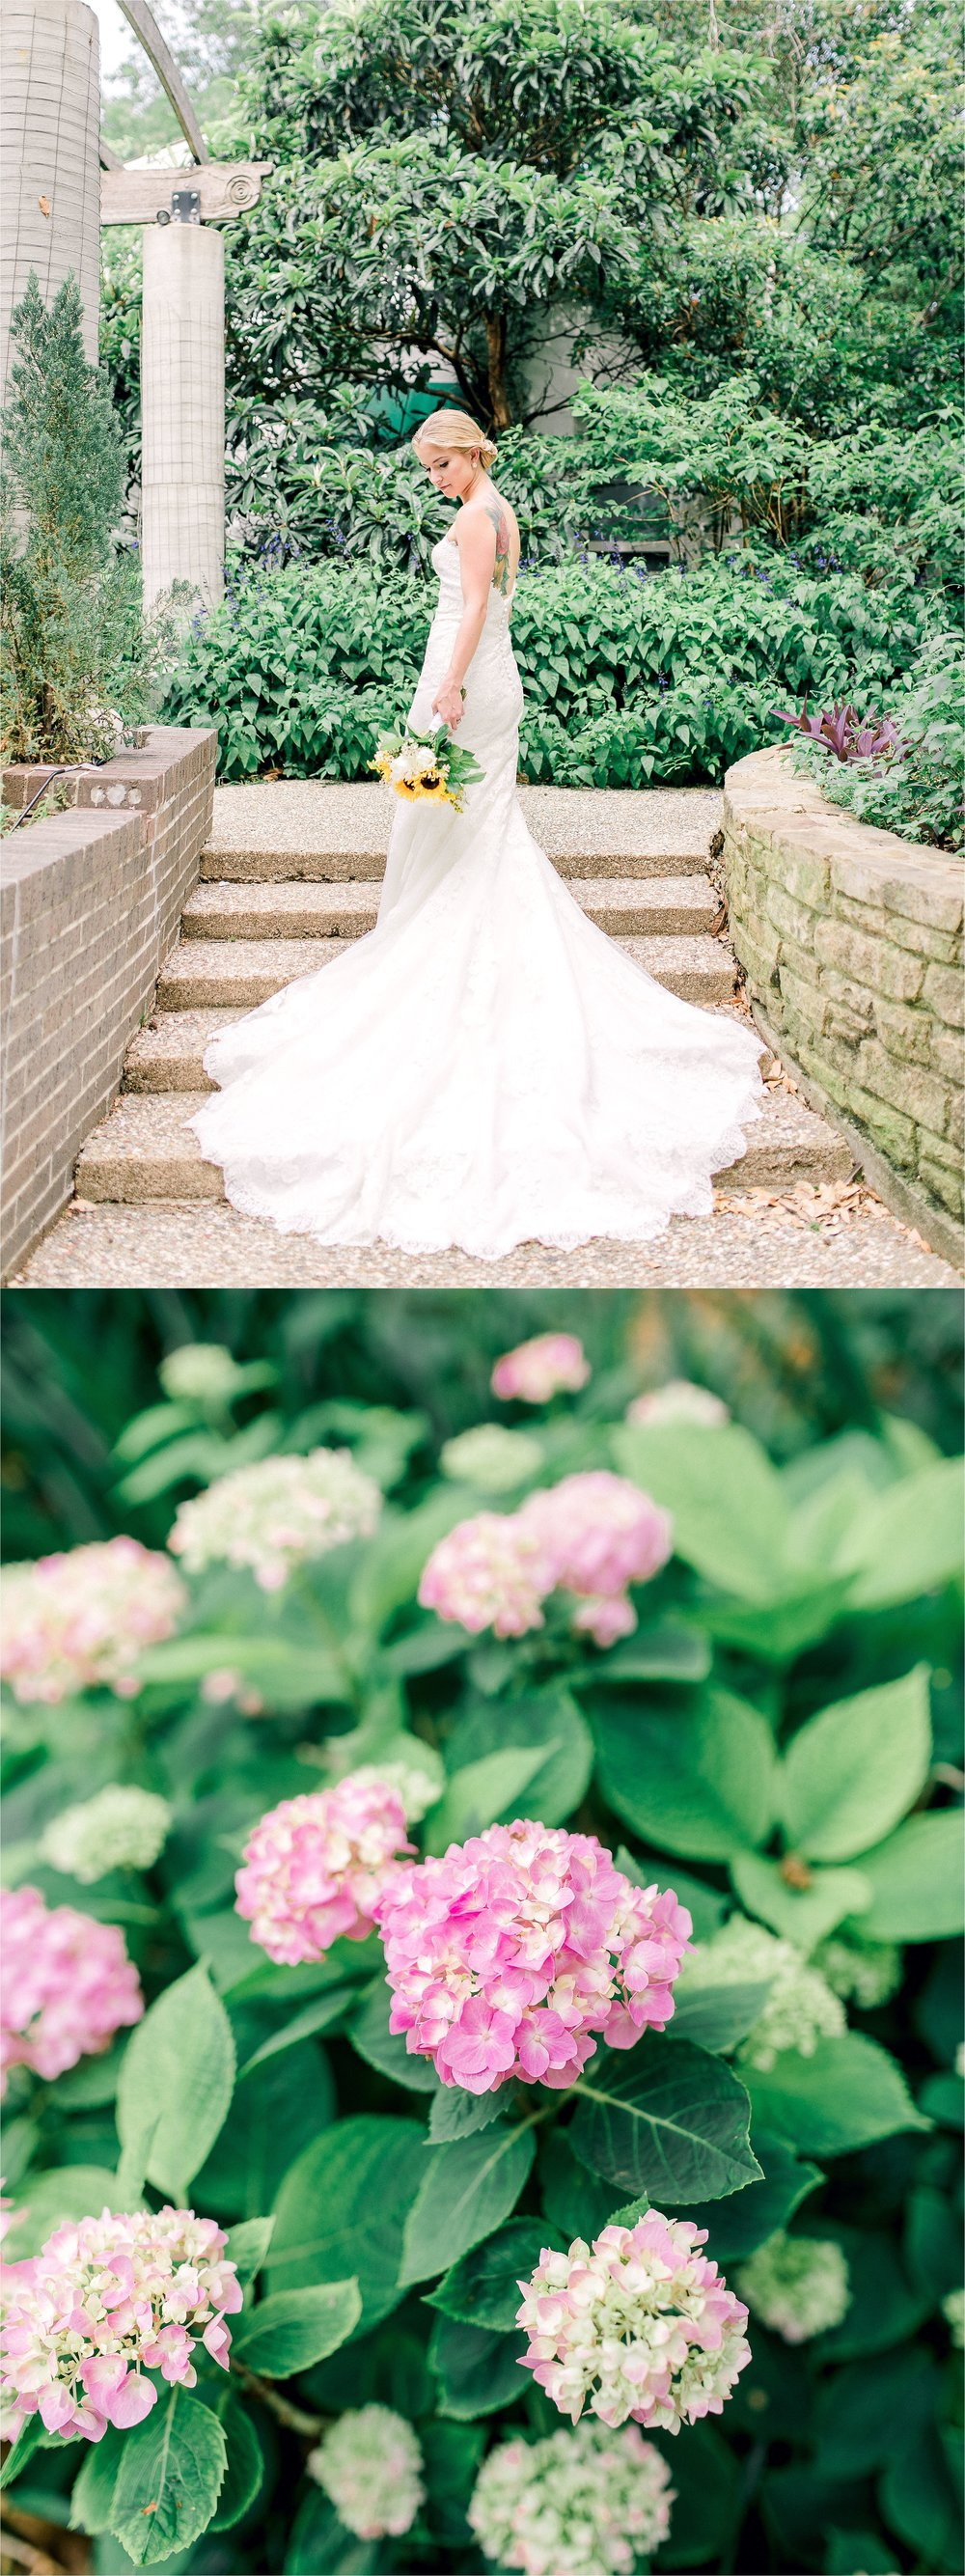 CHUALEEPHOTOGRAPHY_TEXASWEDDINGPHOTOGRAPHER_TEXASDISCOVERYGARDENS_1001.jpg